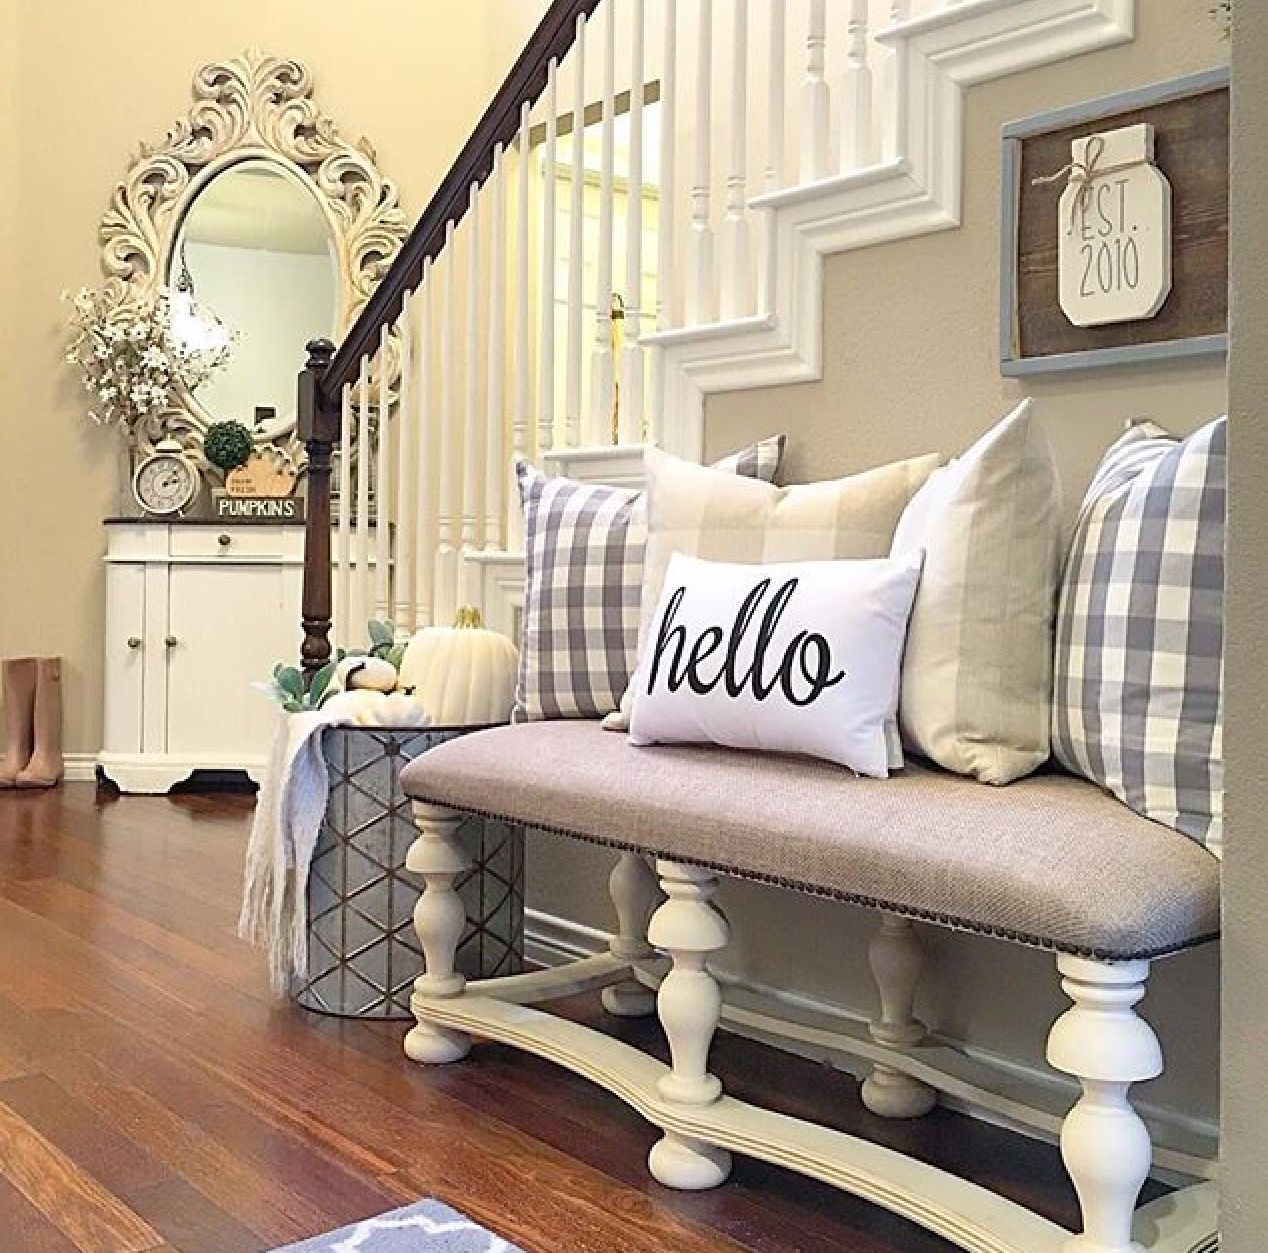 Foyer Seating : Entry decorating ideas furniture home decor